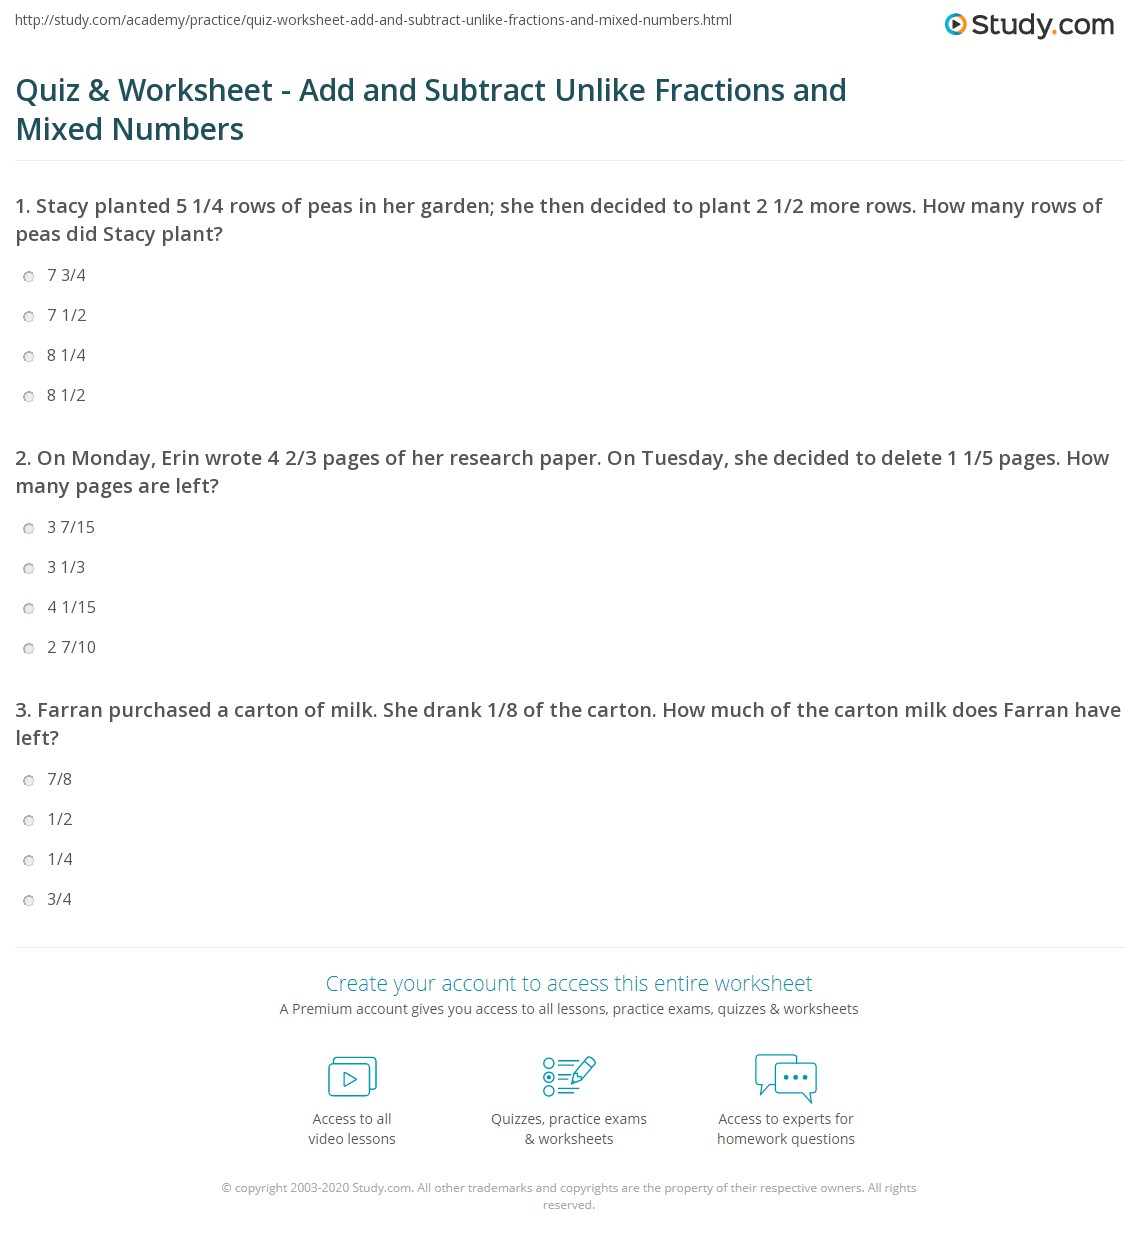 Quiz Worksheet Add and Subtract Unlike Fractions and Mixed – Adding Fractions with Mixed Numbers Worksheets